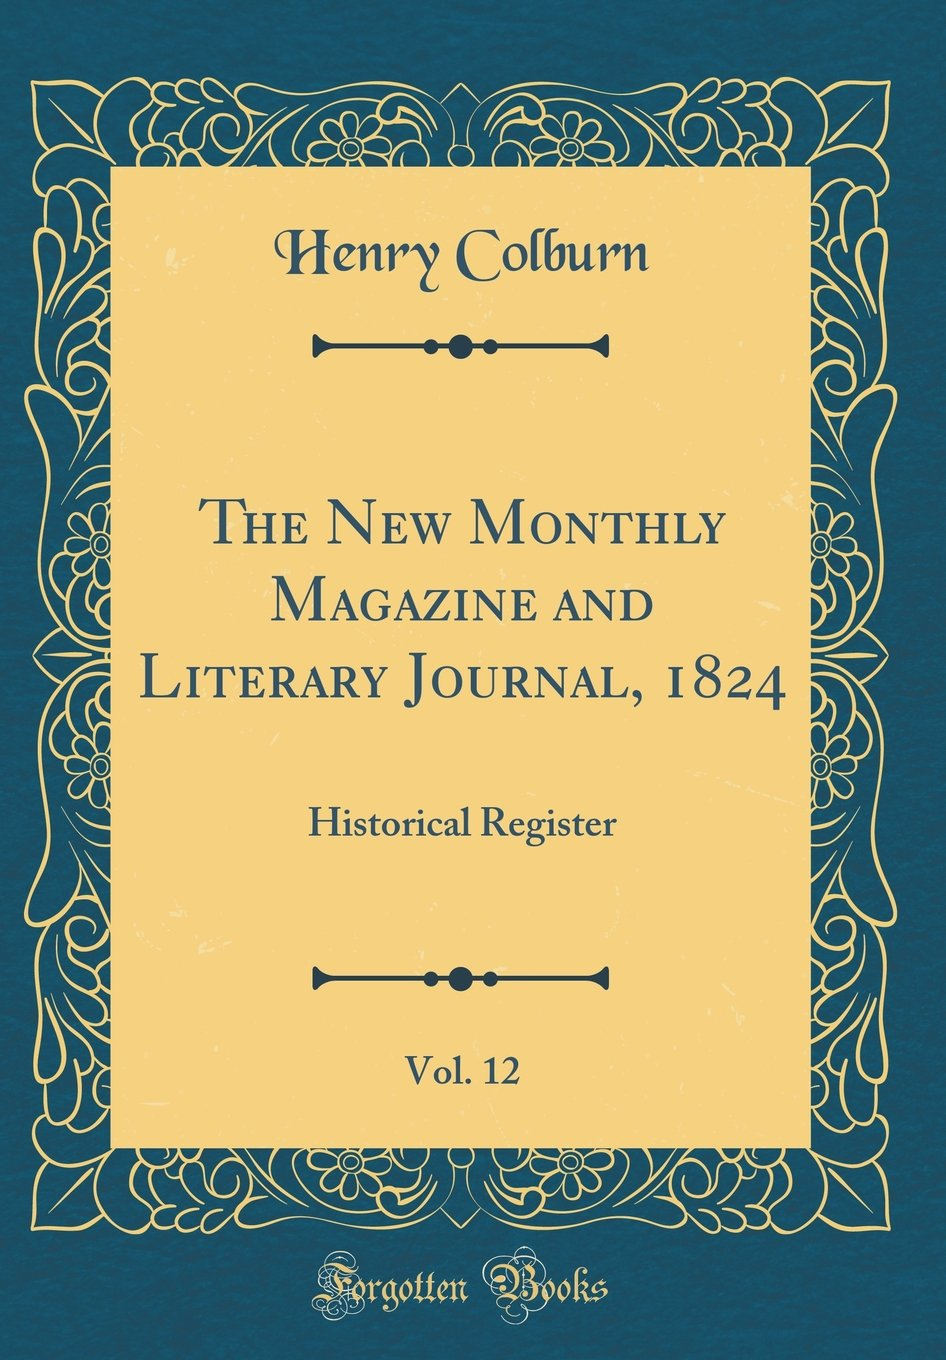 The New Monthly Magazine and Literary Journal, 1824, Vol. 12: Historical Register (Classic Reprint) pdf